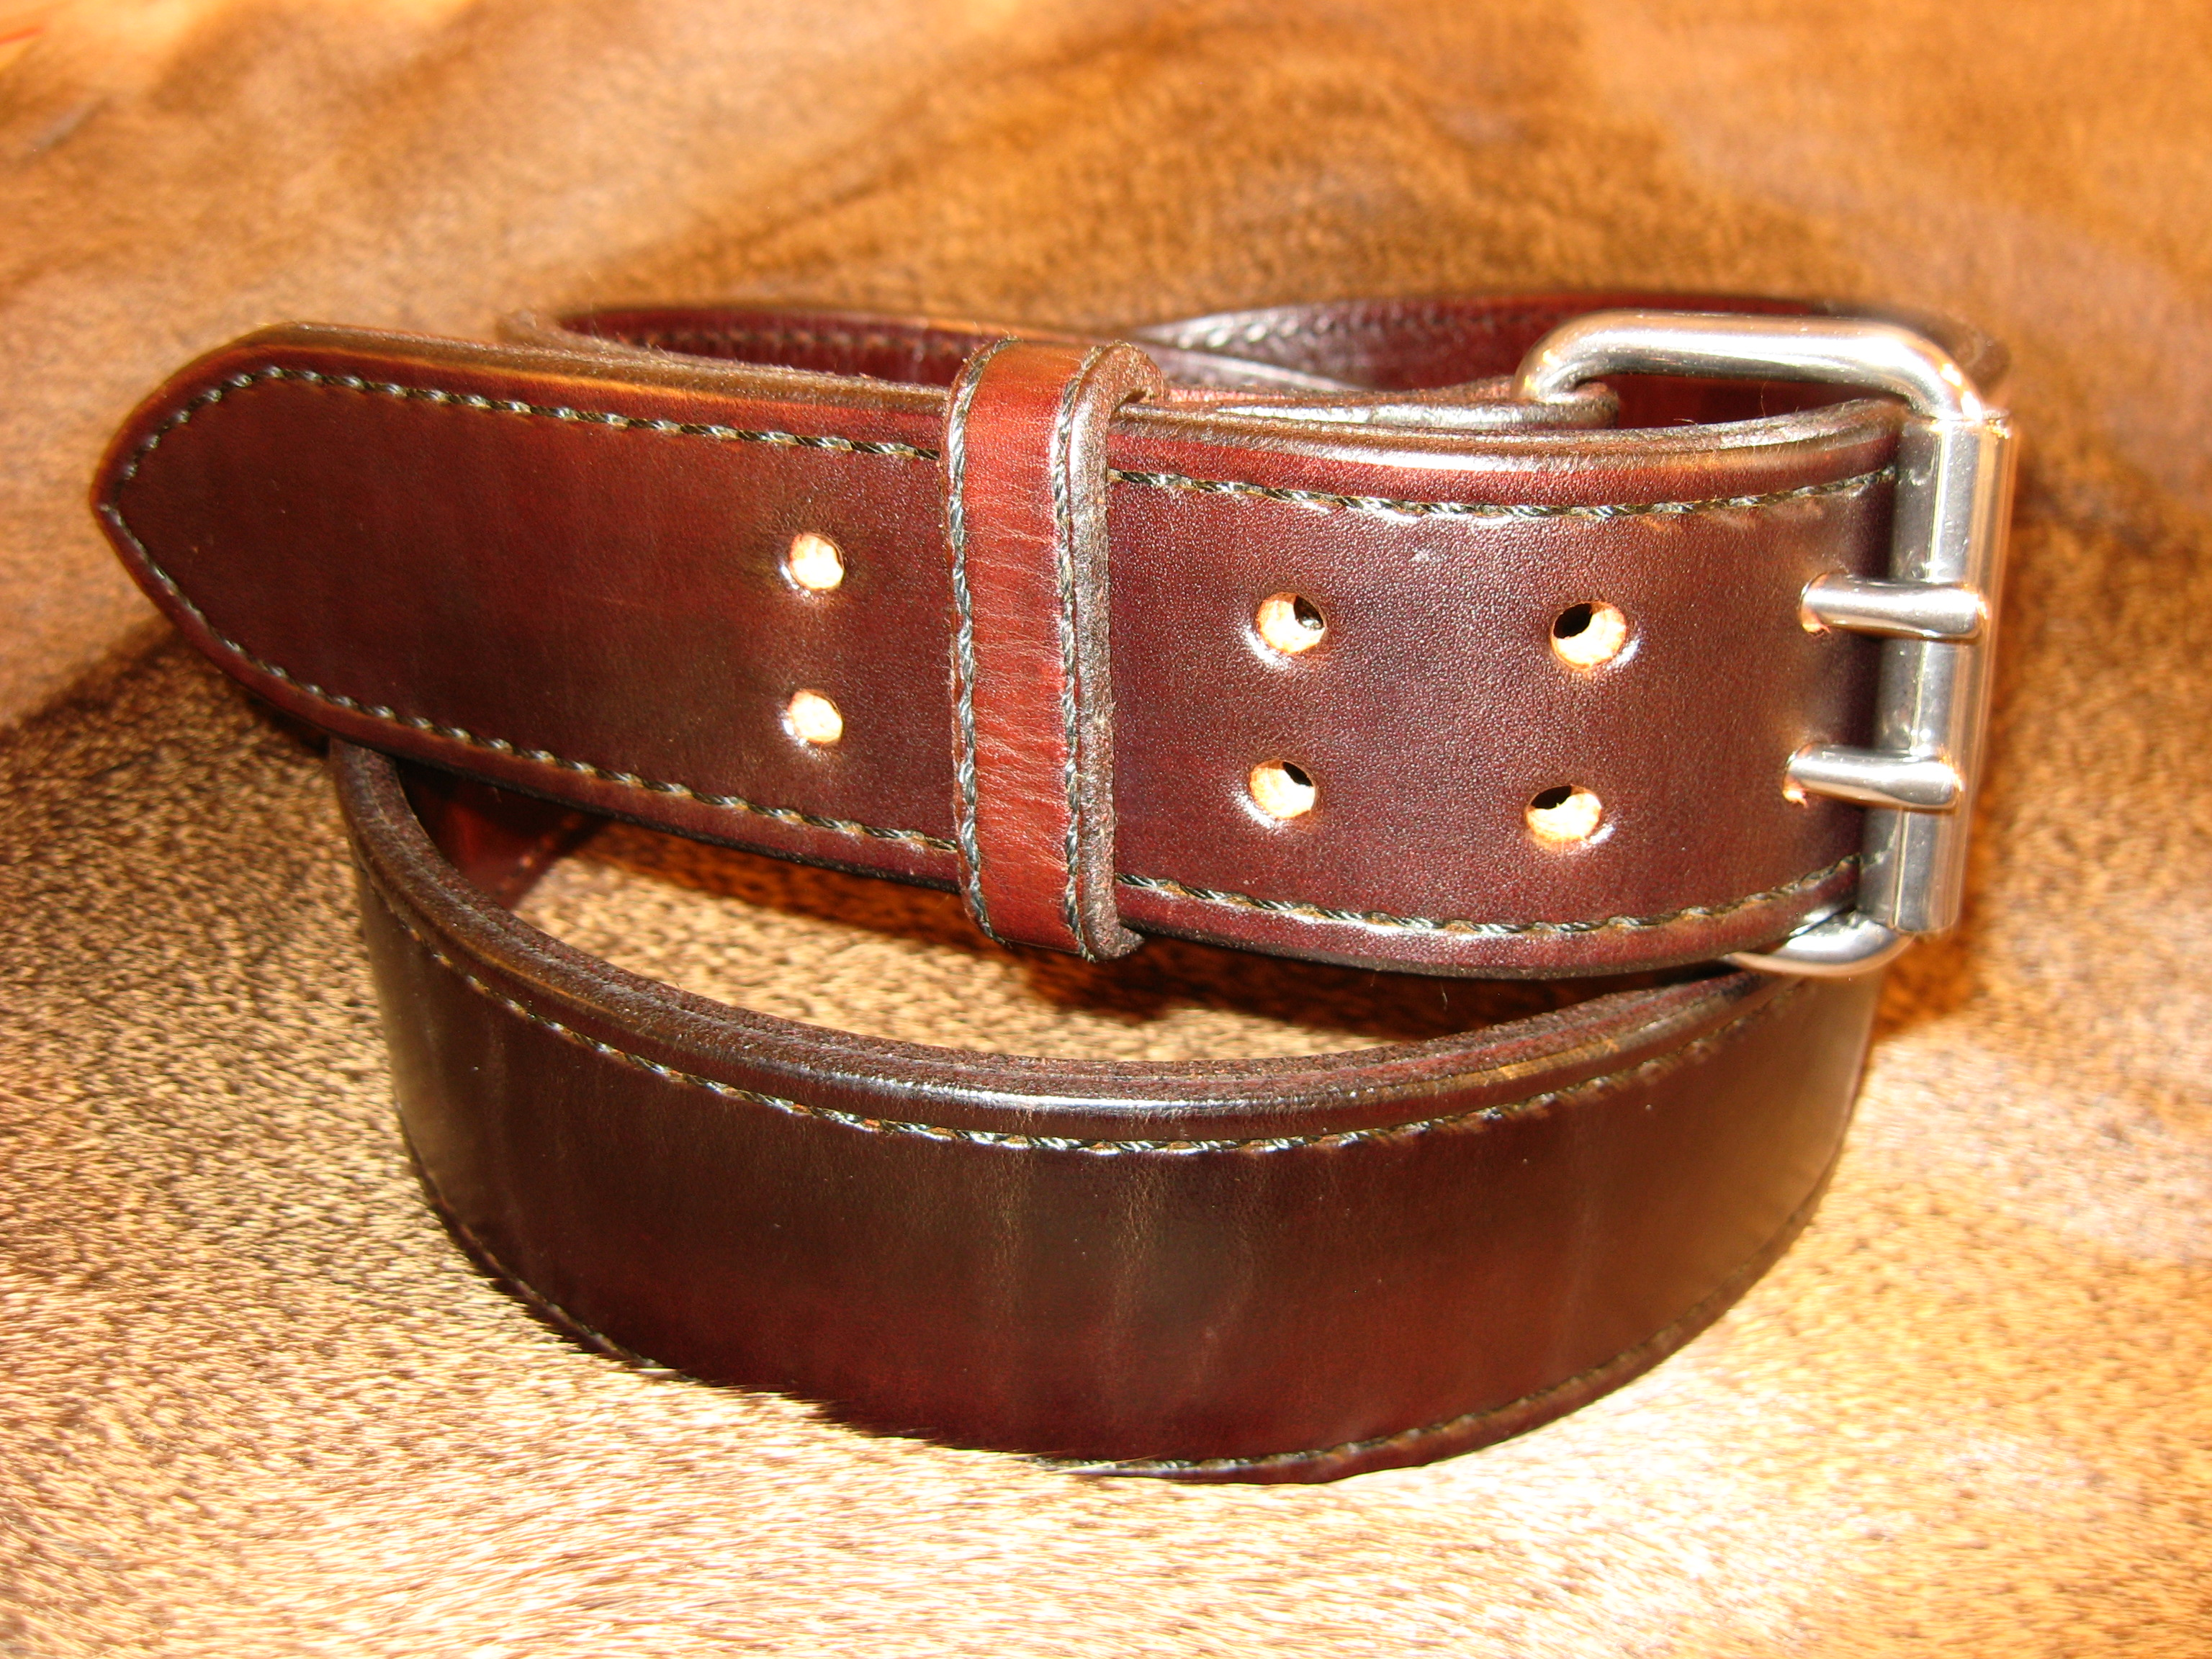 heavy duty gun belt leather with a width of 2